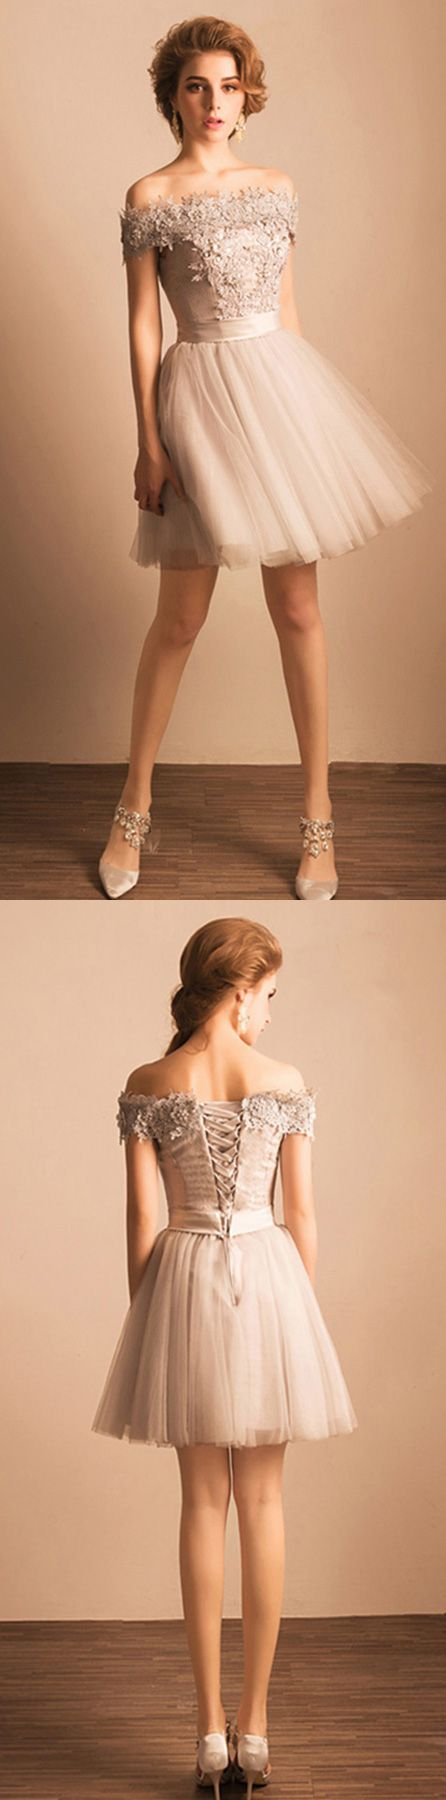 Short party dress with lace and tulle